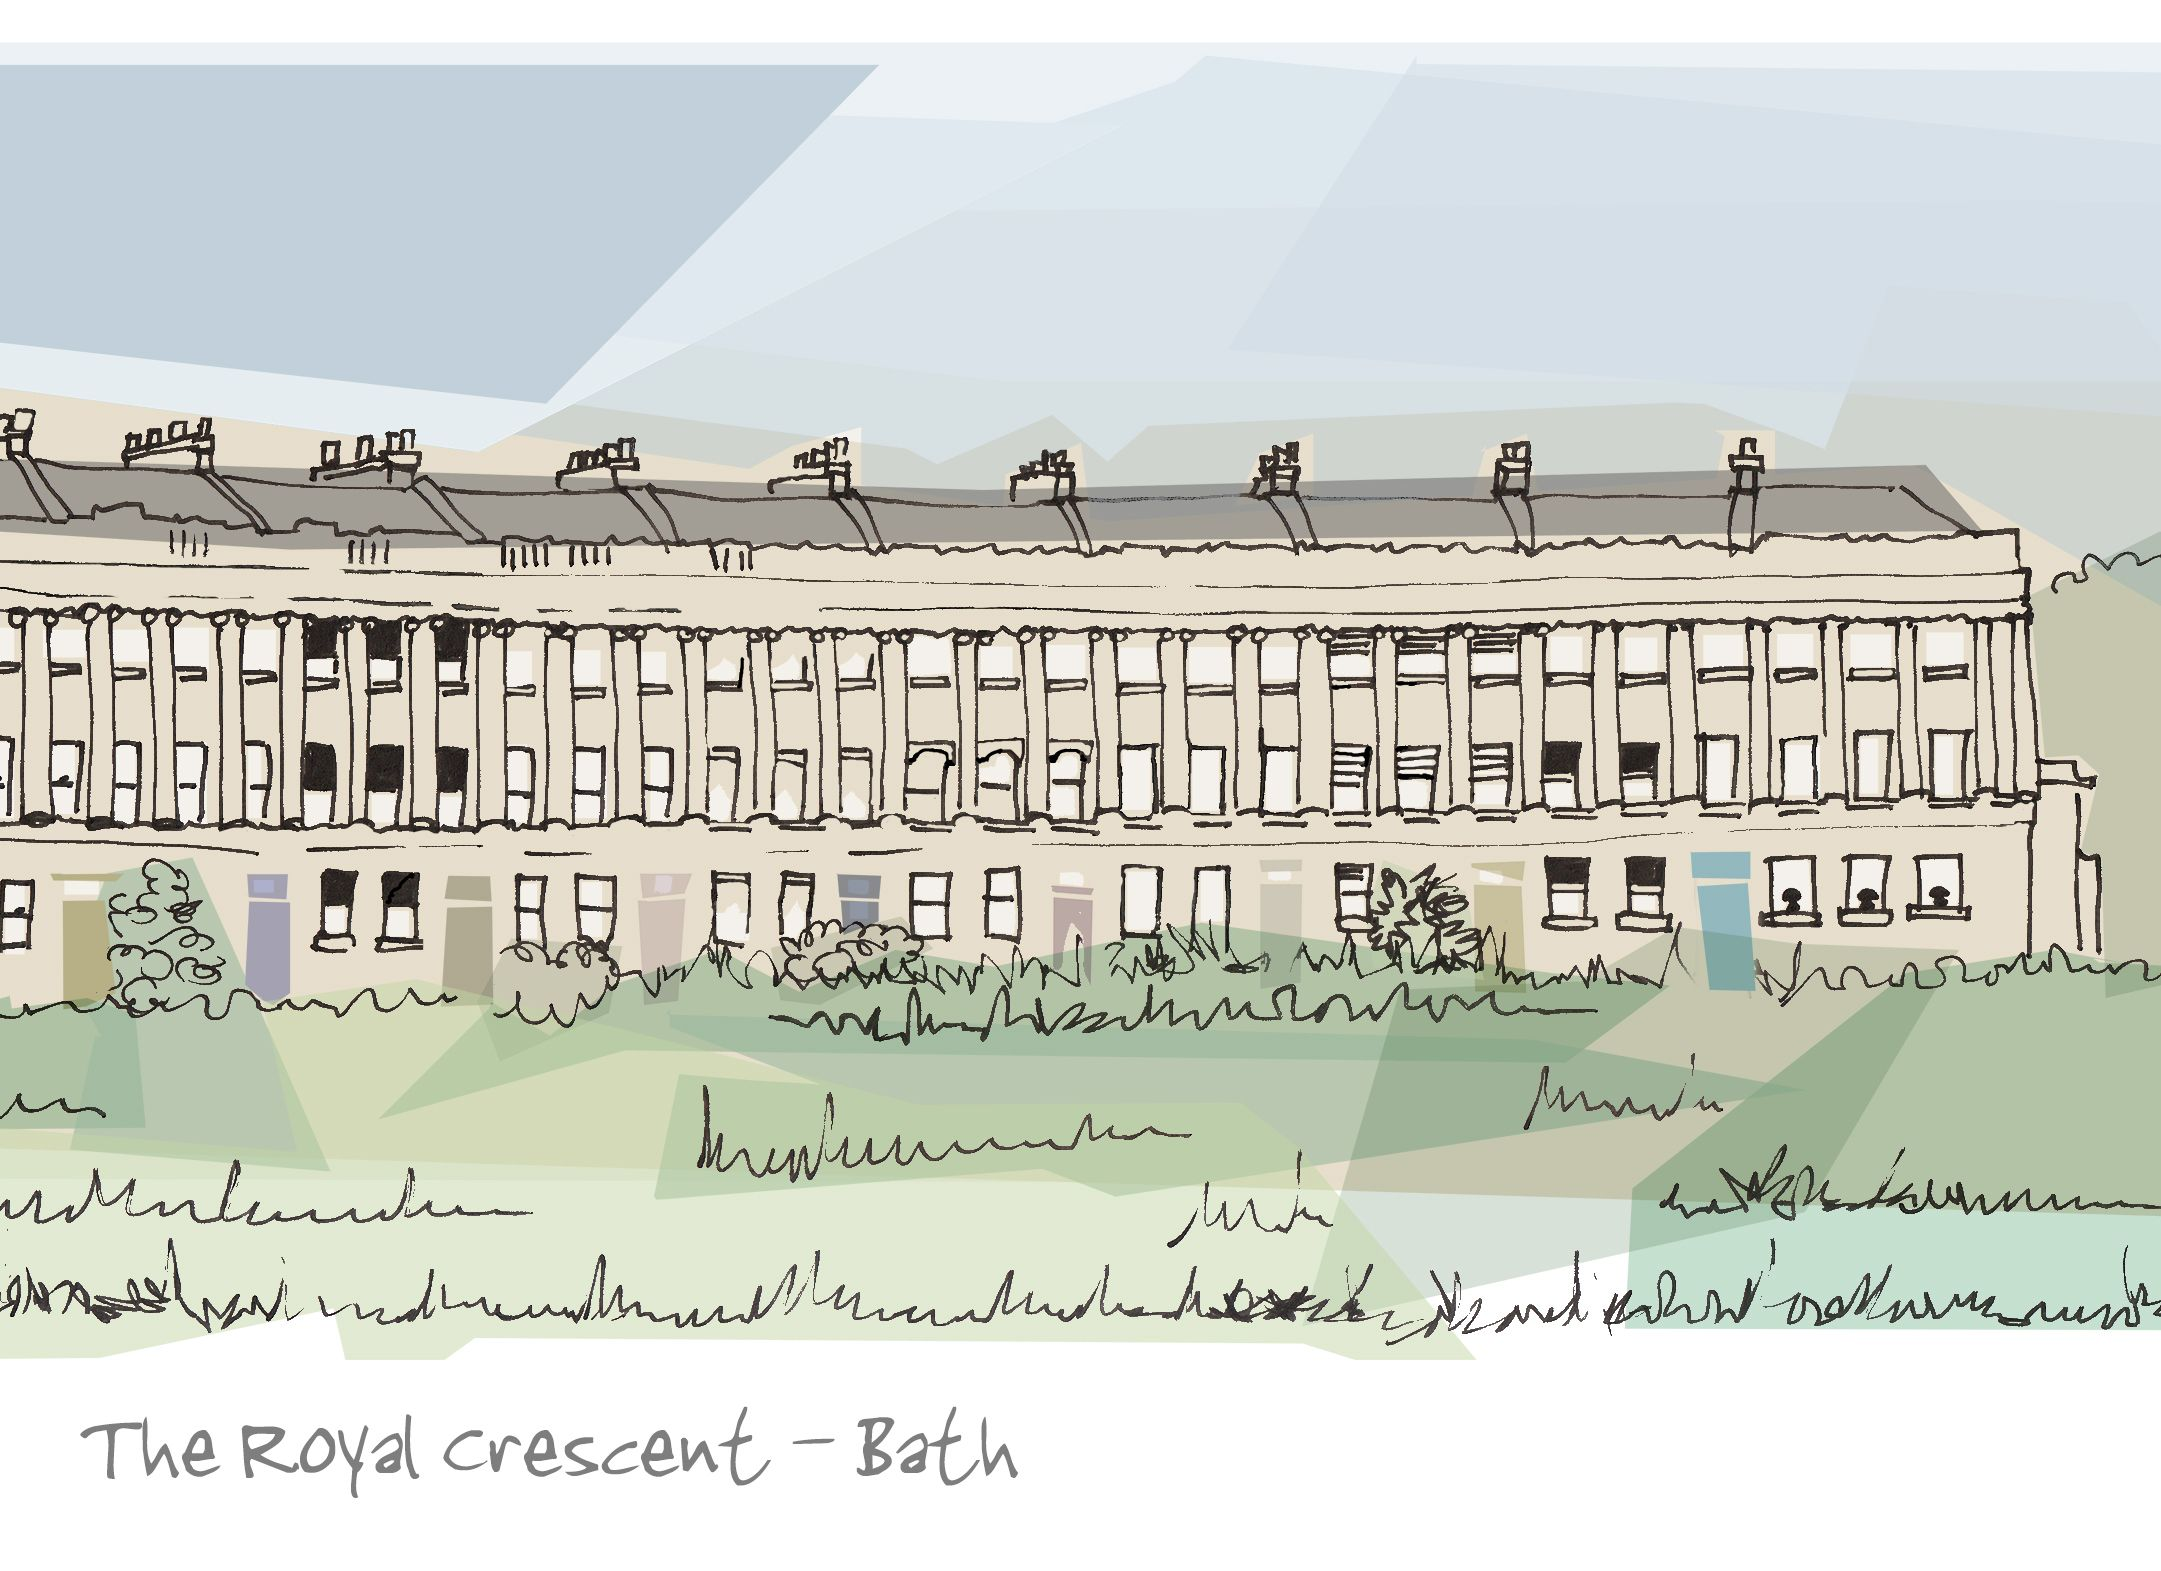 The Royal Crescent Ink drawing accenting architectural lines in a